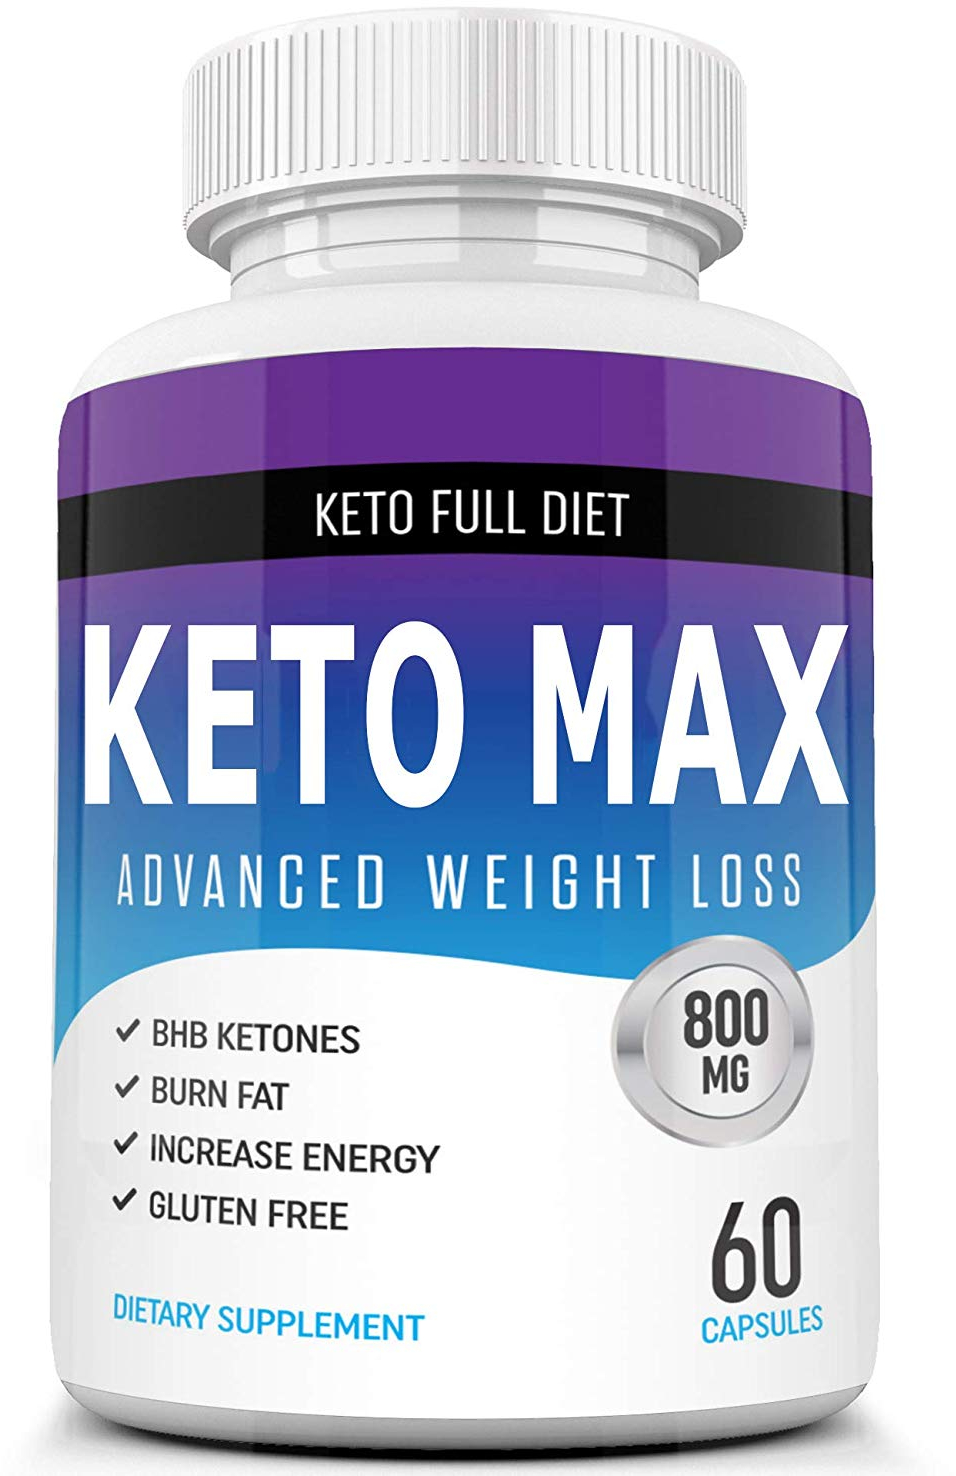 Keto Diet Plus Pills From Shark Tank